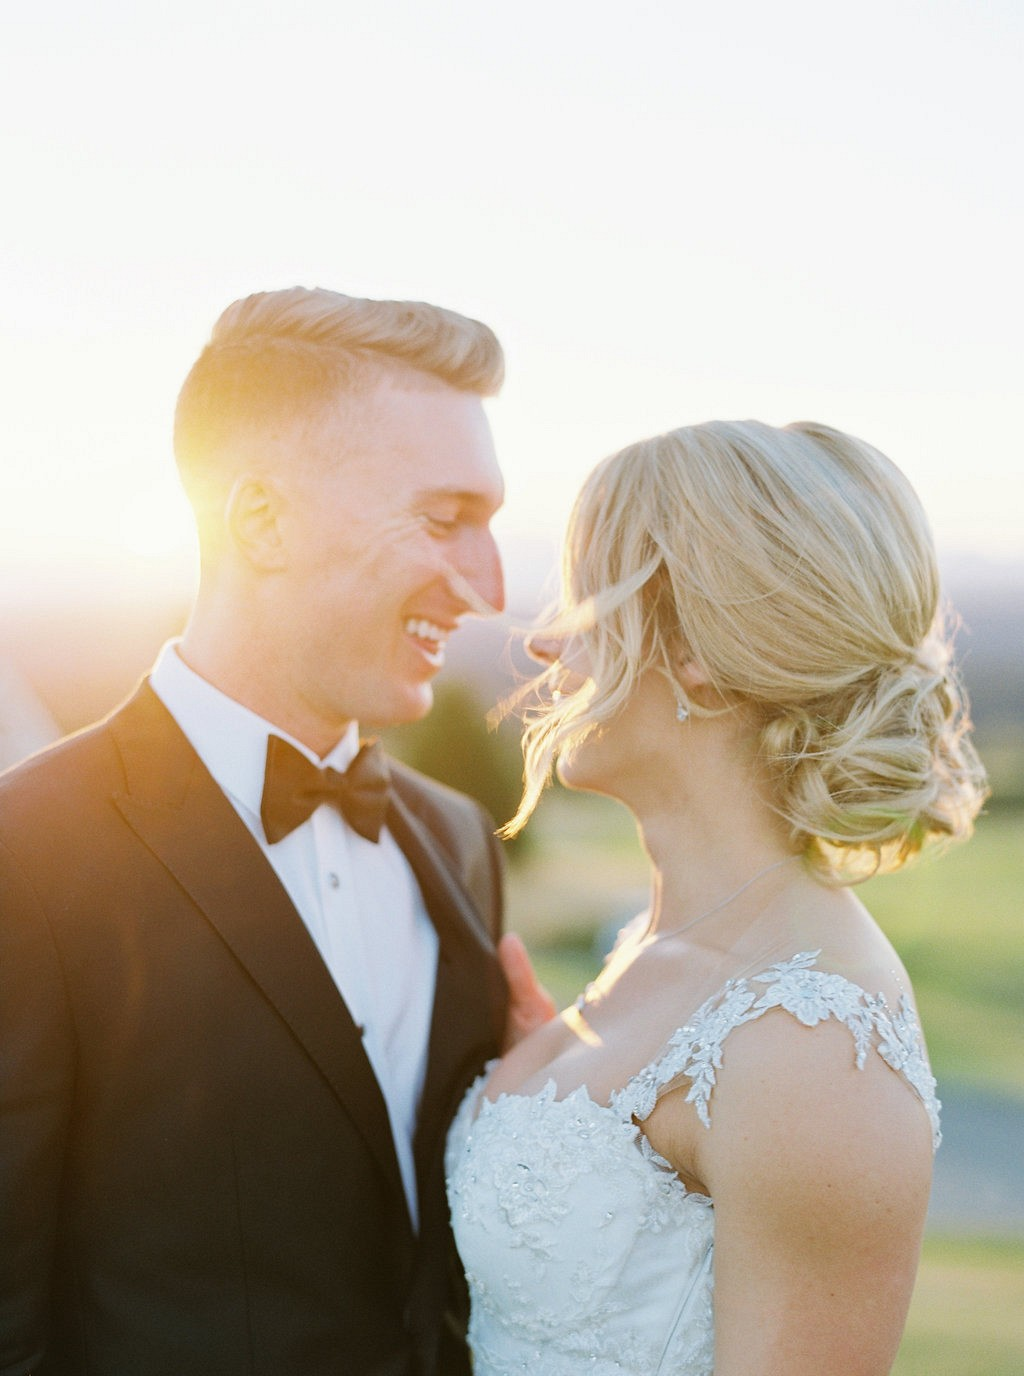 Melanie and Tyson's Supremely Elegant Blue and Blush Wedding